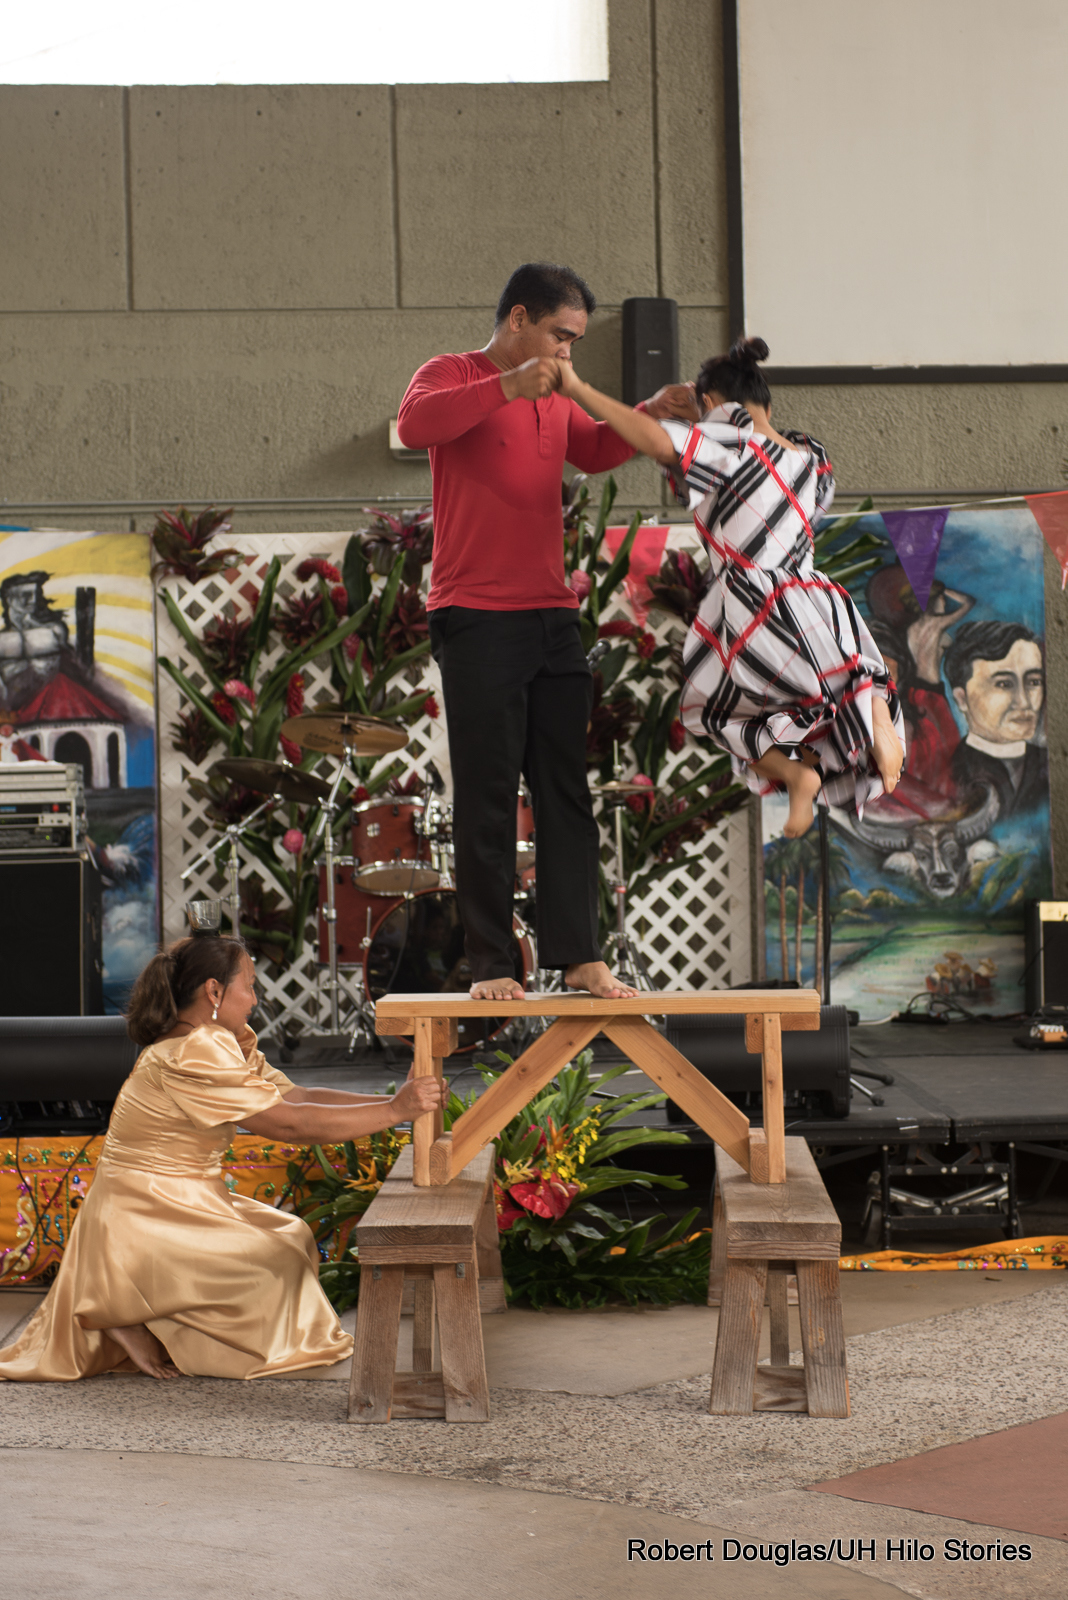 Couple dancing, woman leaping up on platform with man's support.